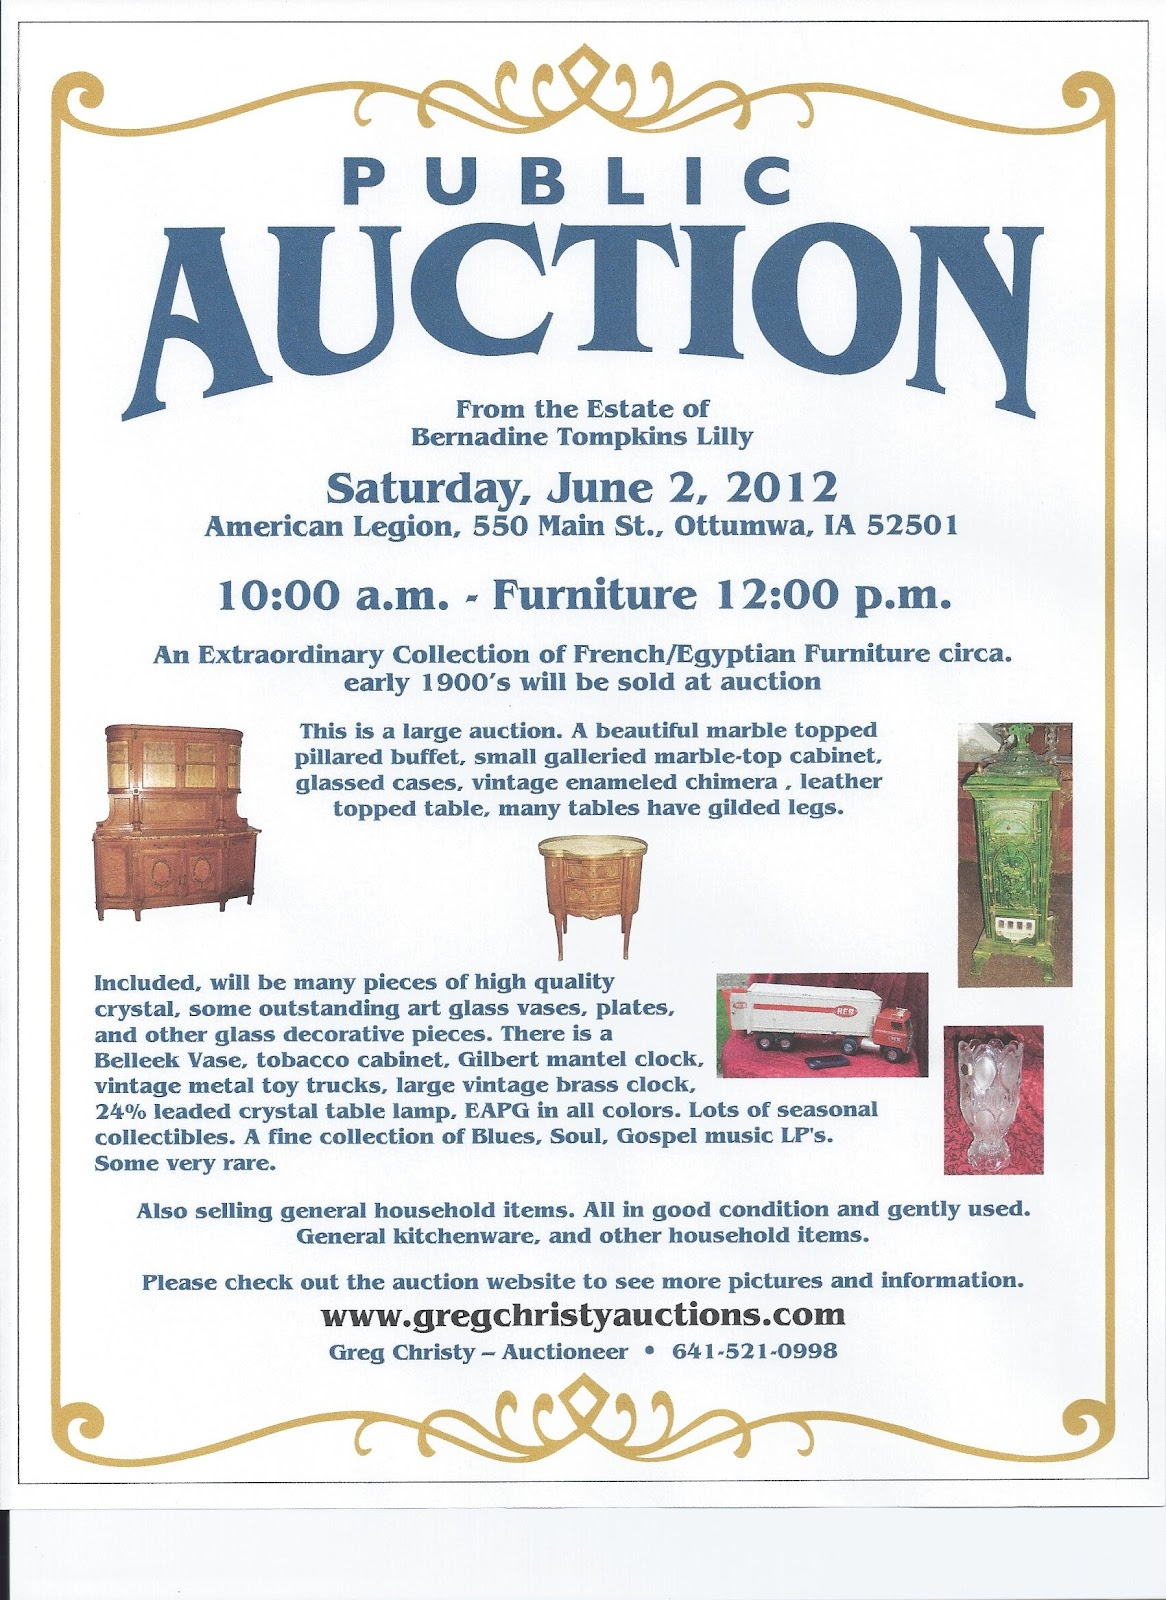 greg christy auctions your iowa antiques auctioneer i can sell moment to print out the flyer for a hard copy to help you get there be sure to check out my website for more information and pictures it s right here